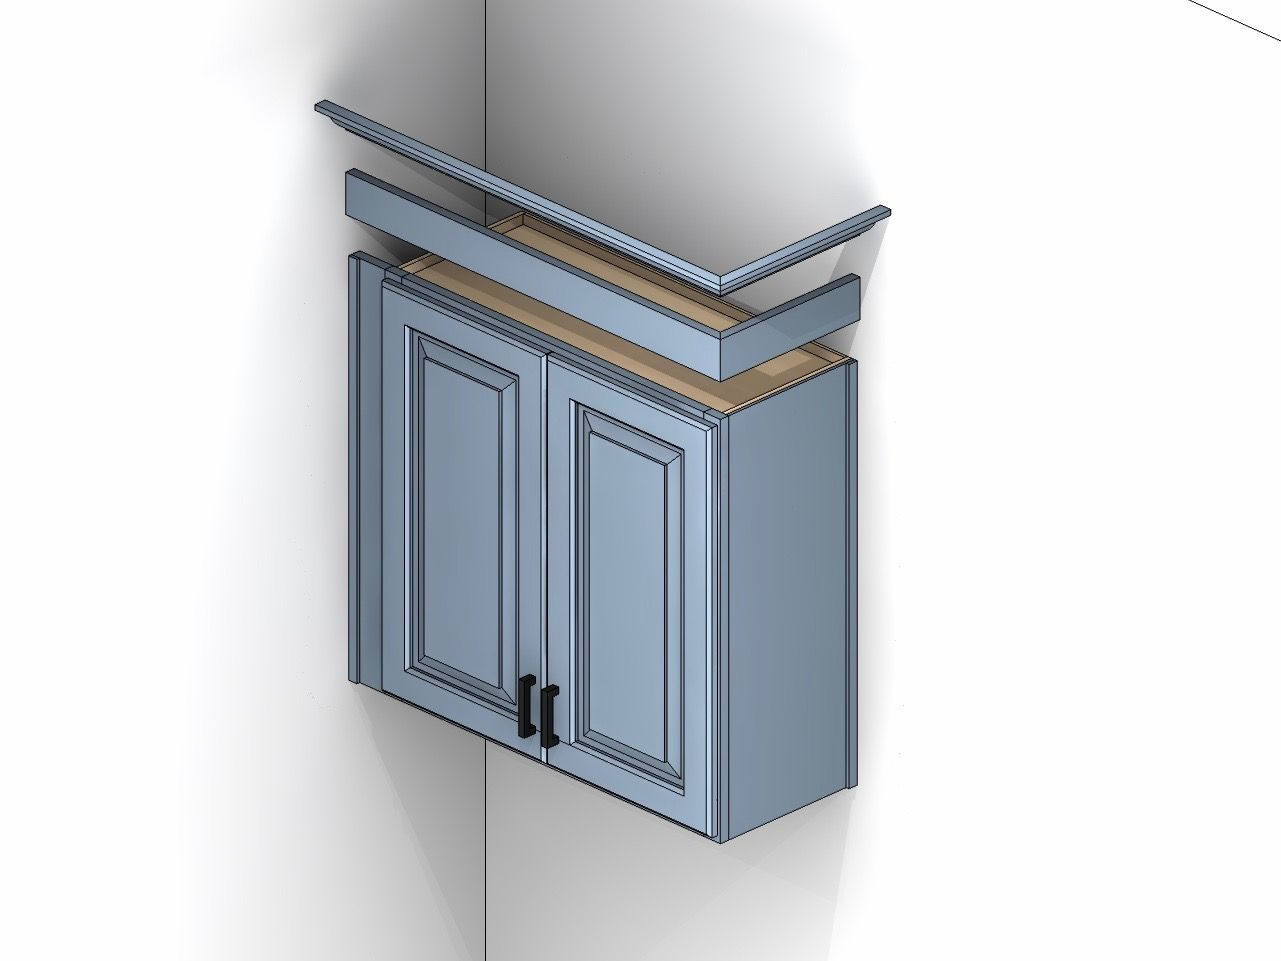 Cabinet Illustration Showing Starter Riser Molding Kitchen Cabinet Molding Cabinet Trim Cabinet Molding